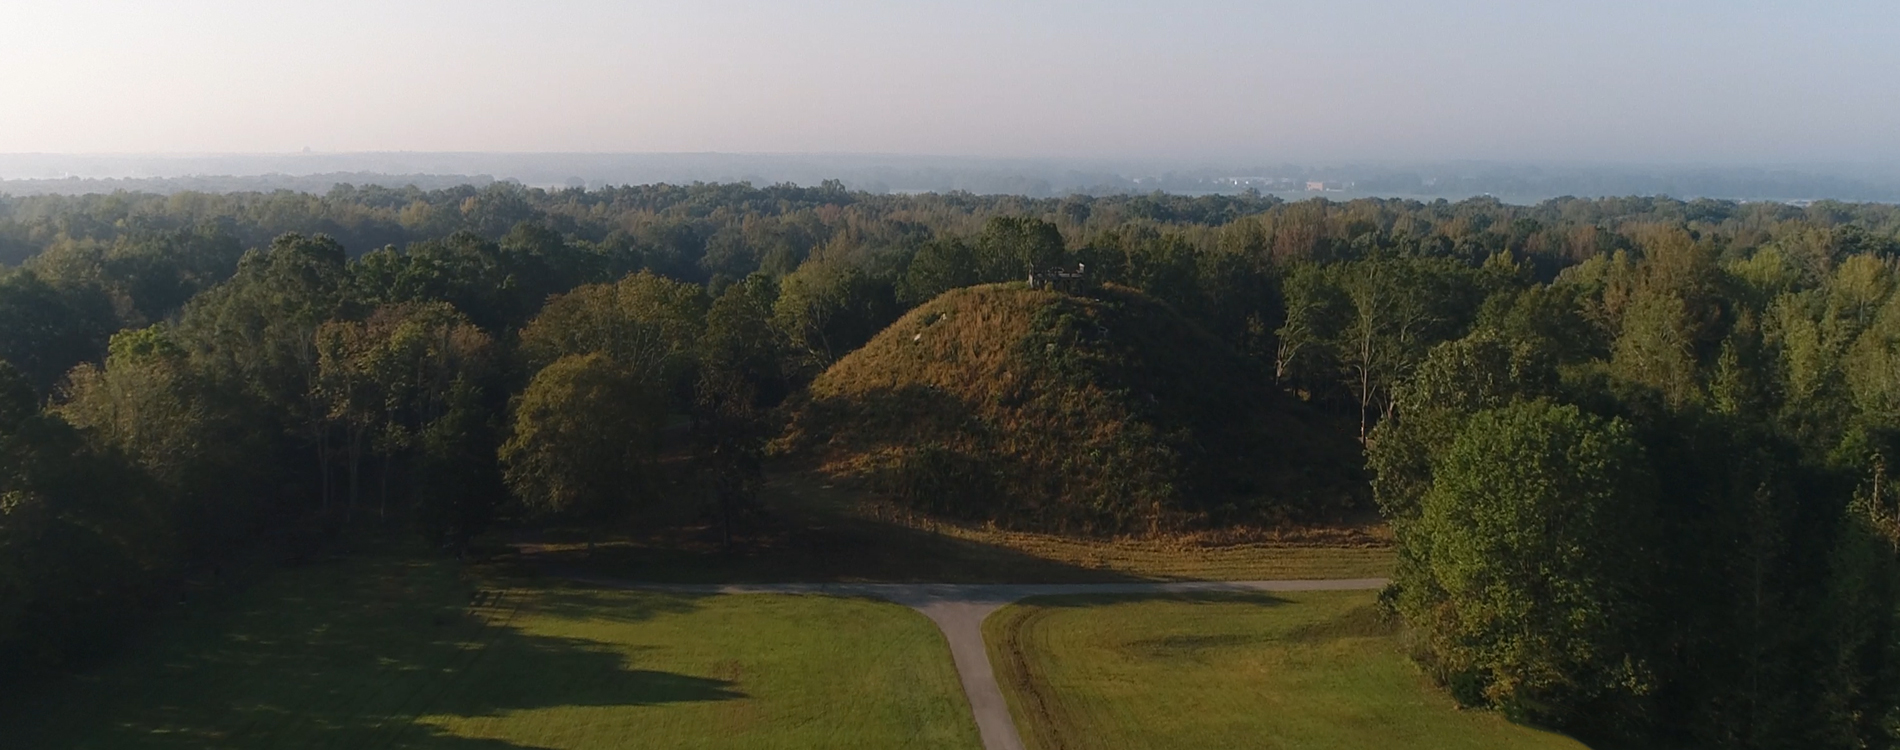 Sauls Mound at Pinson Mounds